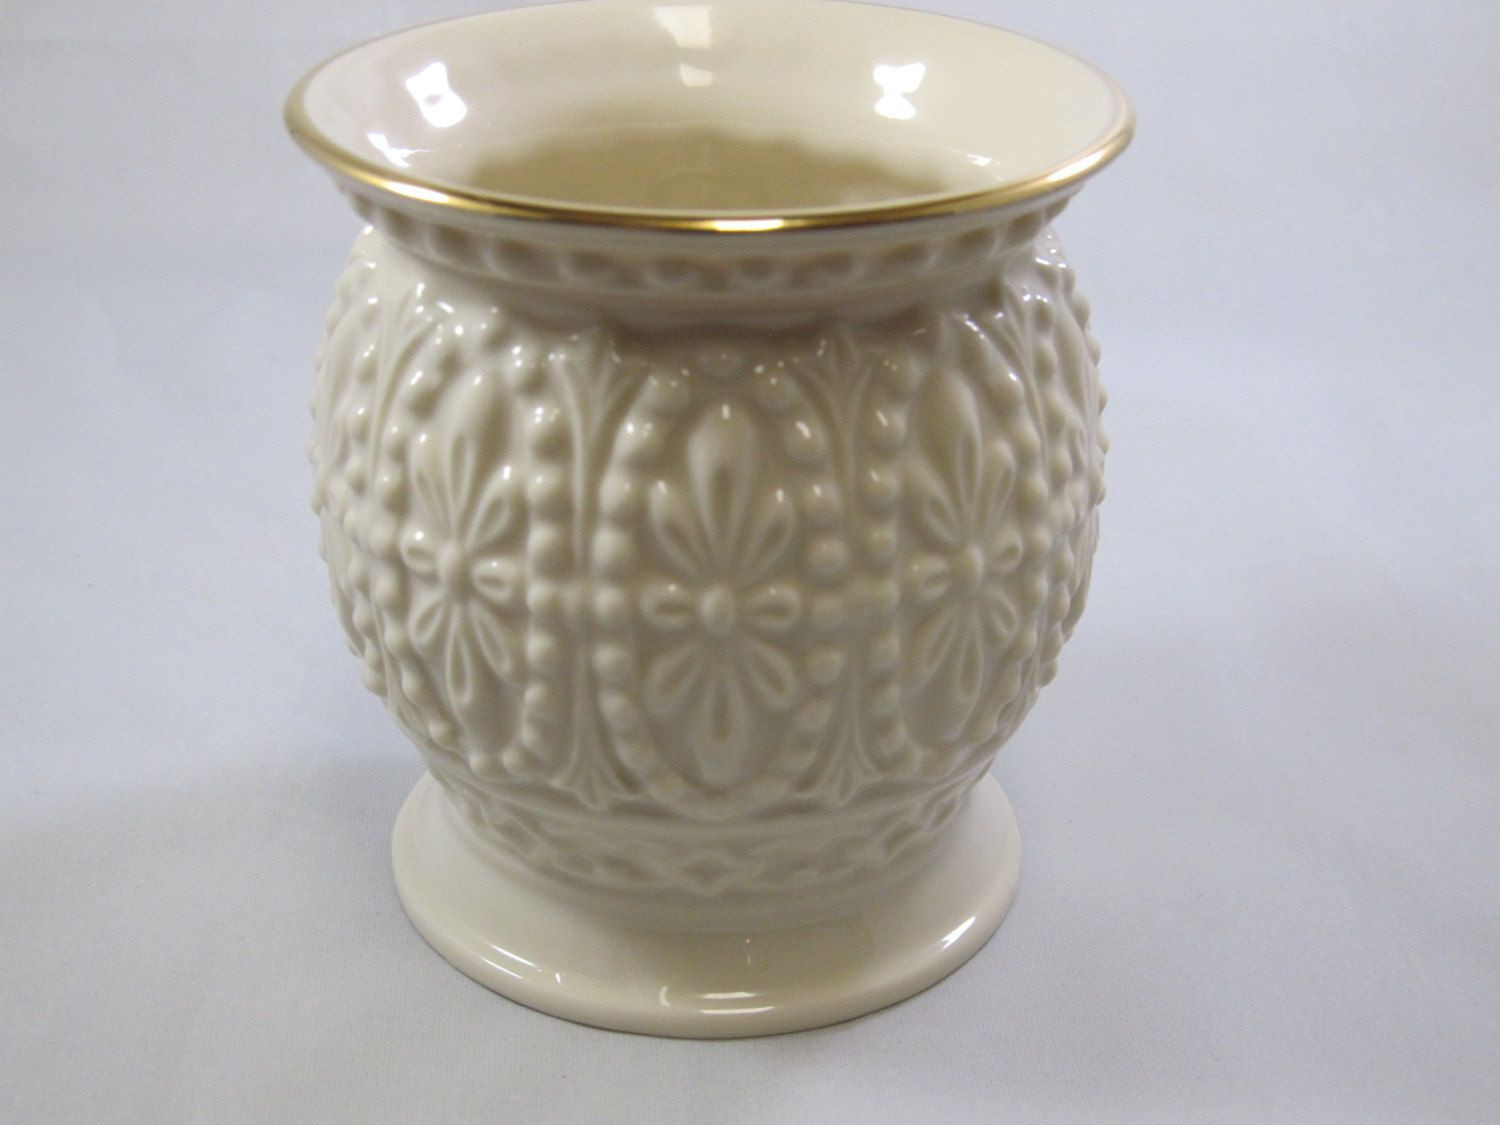 fine china vase made in japan of lenox ivory porcelain vase 24k gold trim bud vase fine china for porcelain